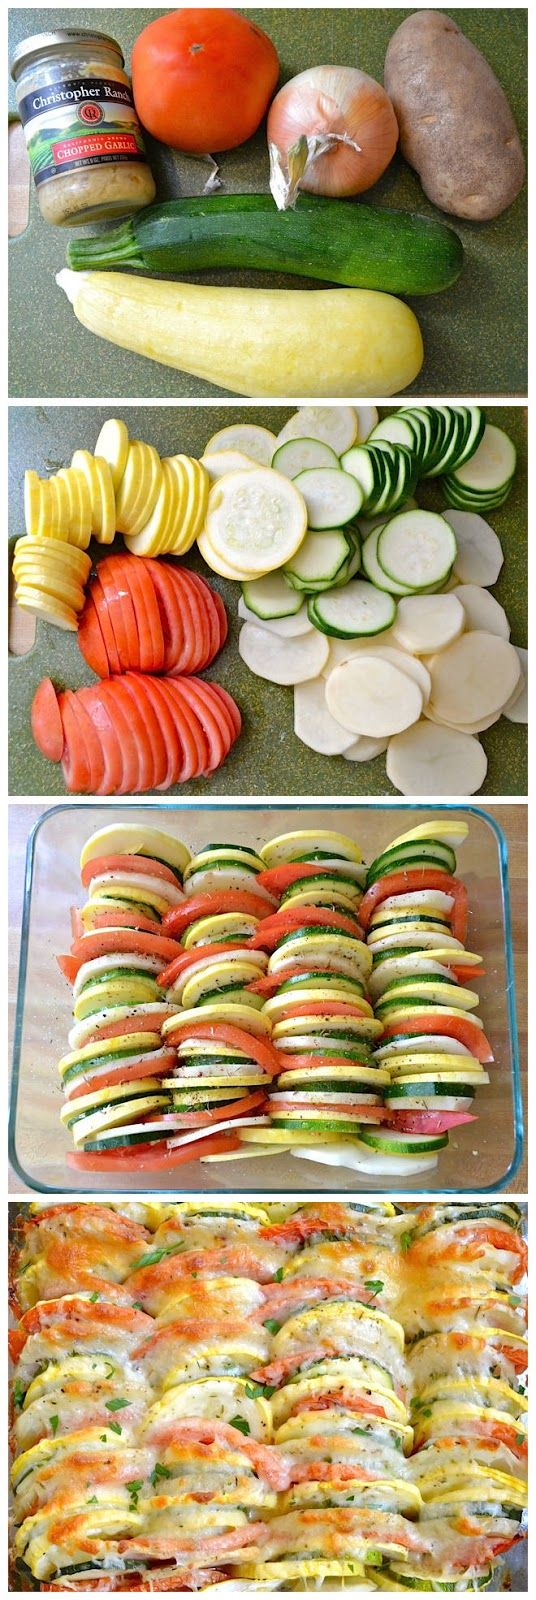 summer vegetables... mmmm this looks so good!